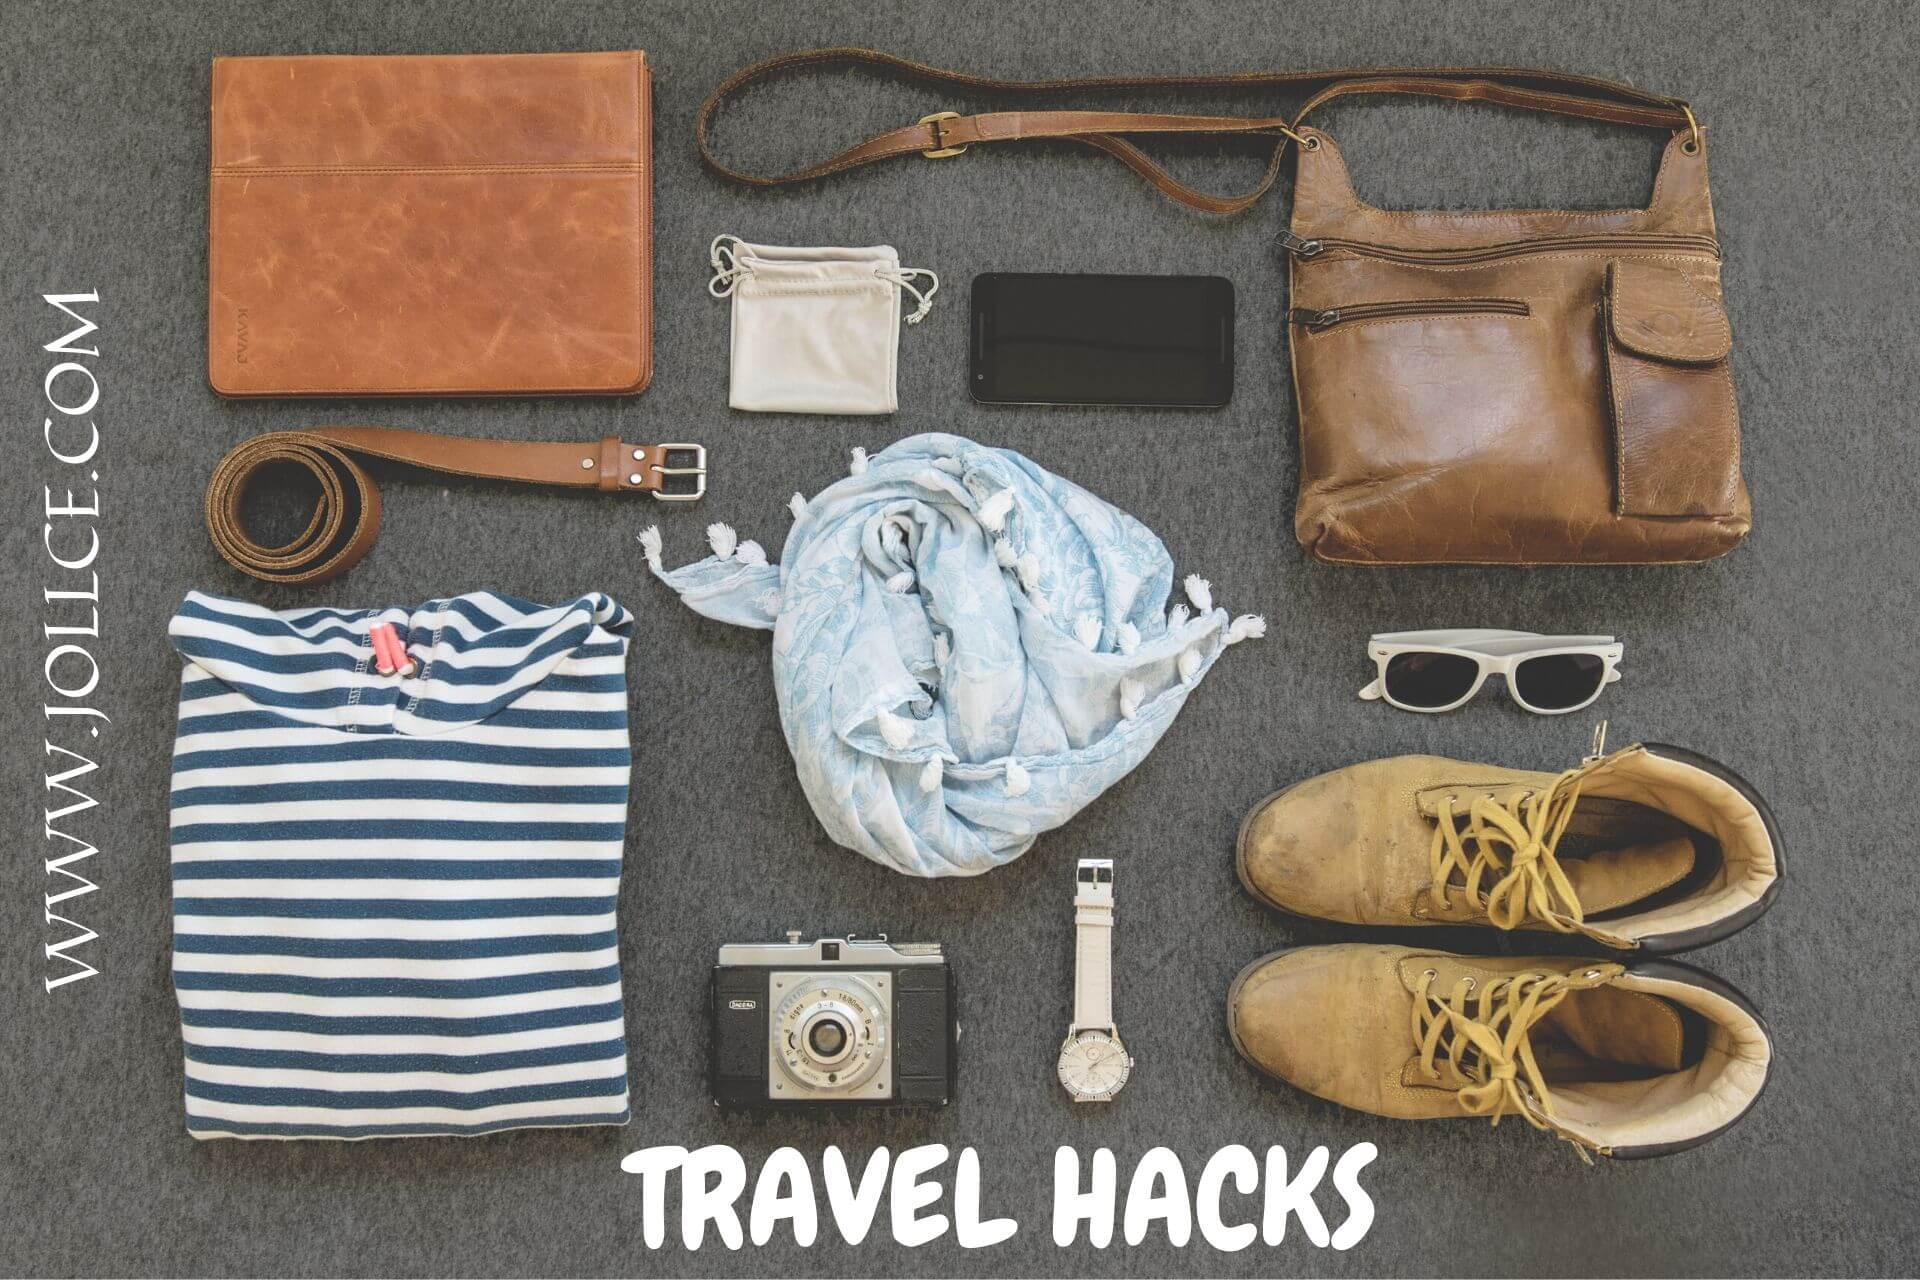 50 Travel Hacks That Will Save You Money, Space, And Time